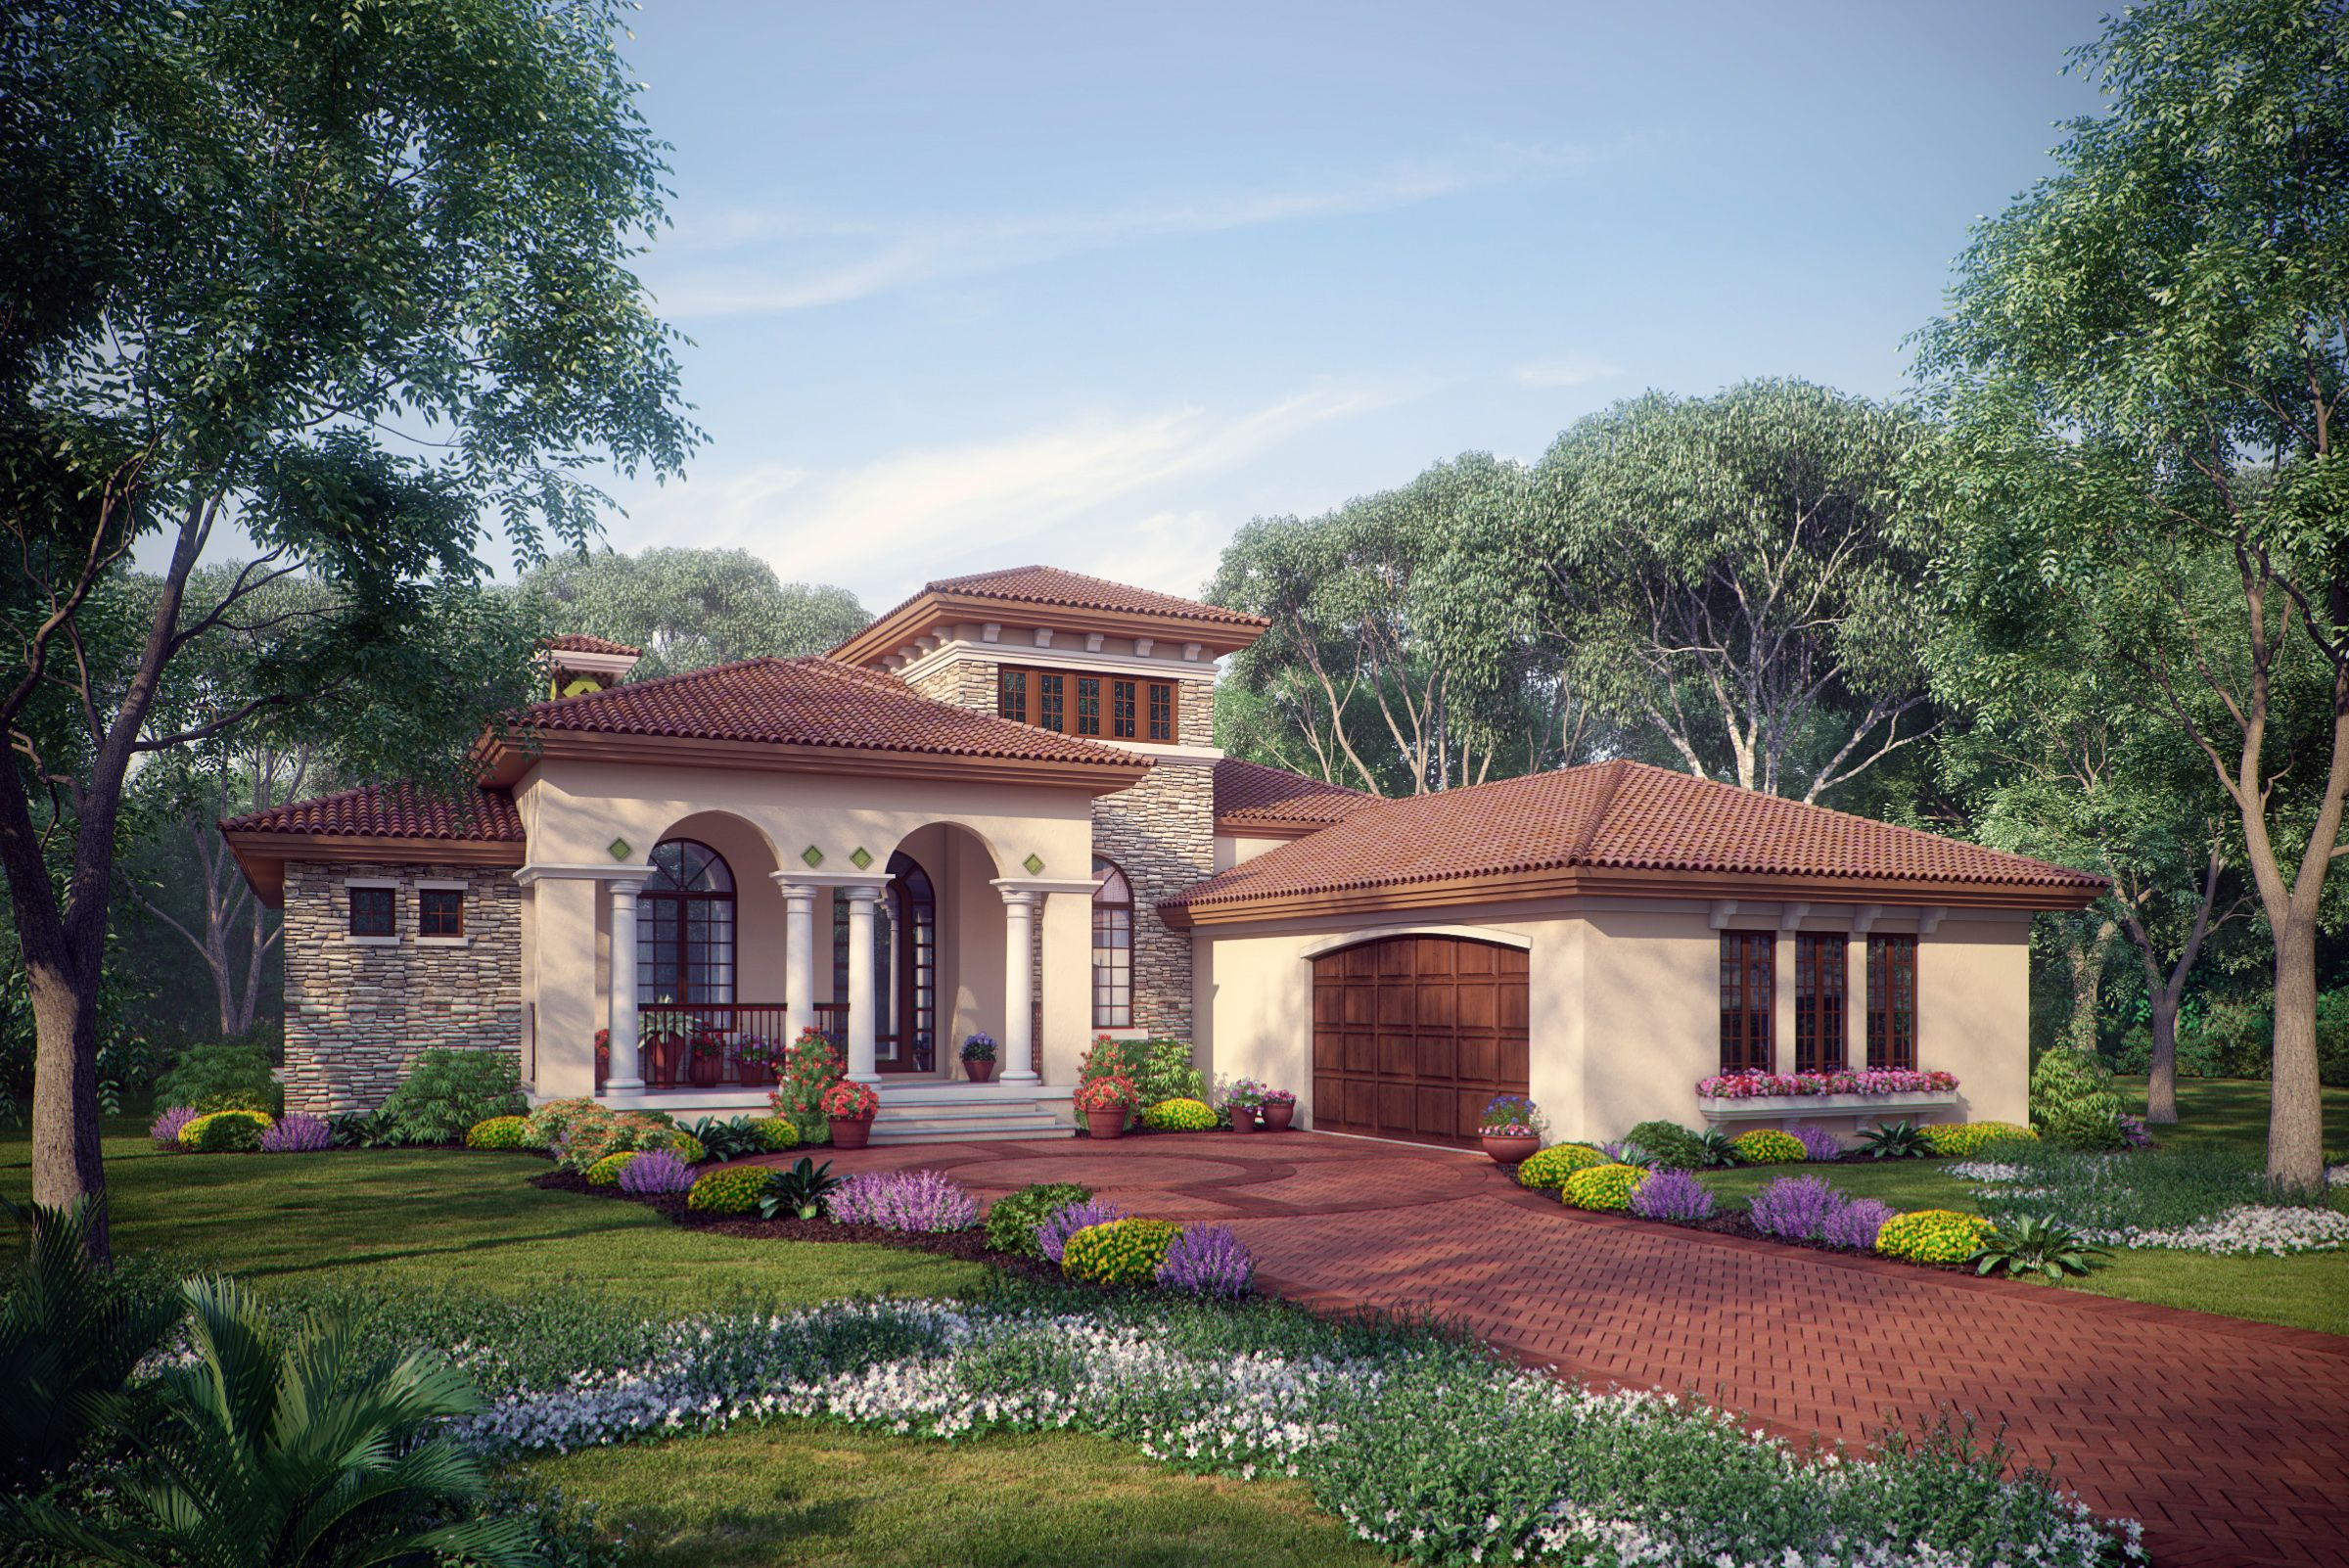 Sater Design S 8071 Casina Rossa House Plan From Our European Home Plan Portfol Mediterranean Style House Plans Mediterranean House Plans Mediterranean Homes